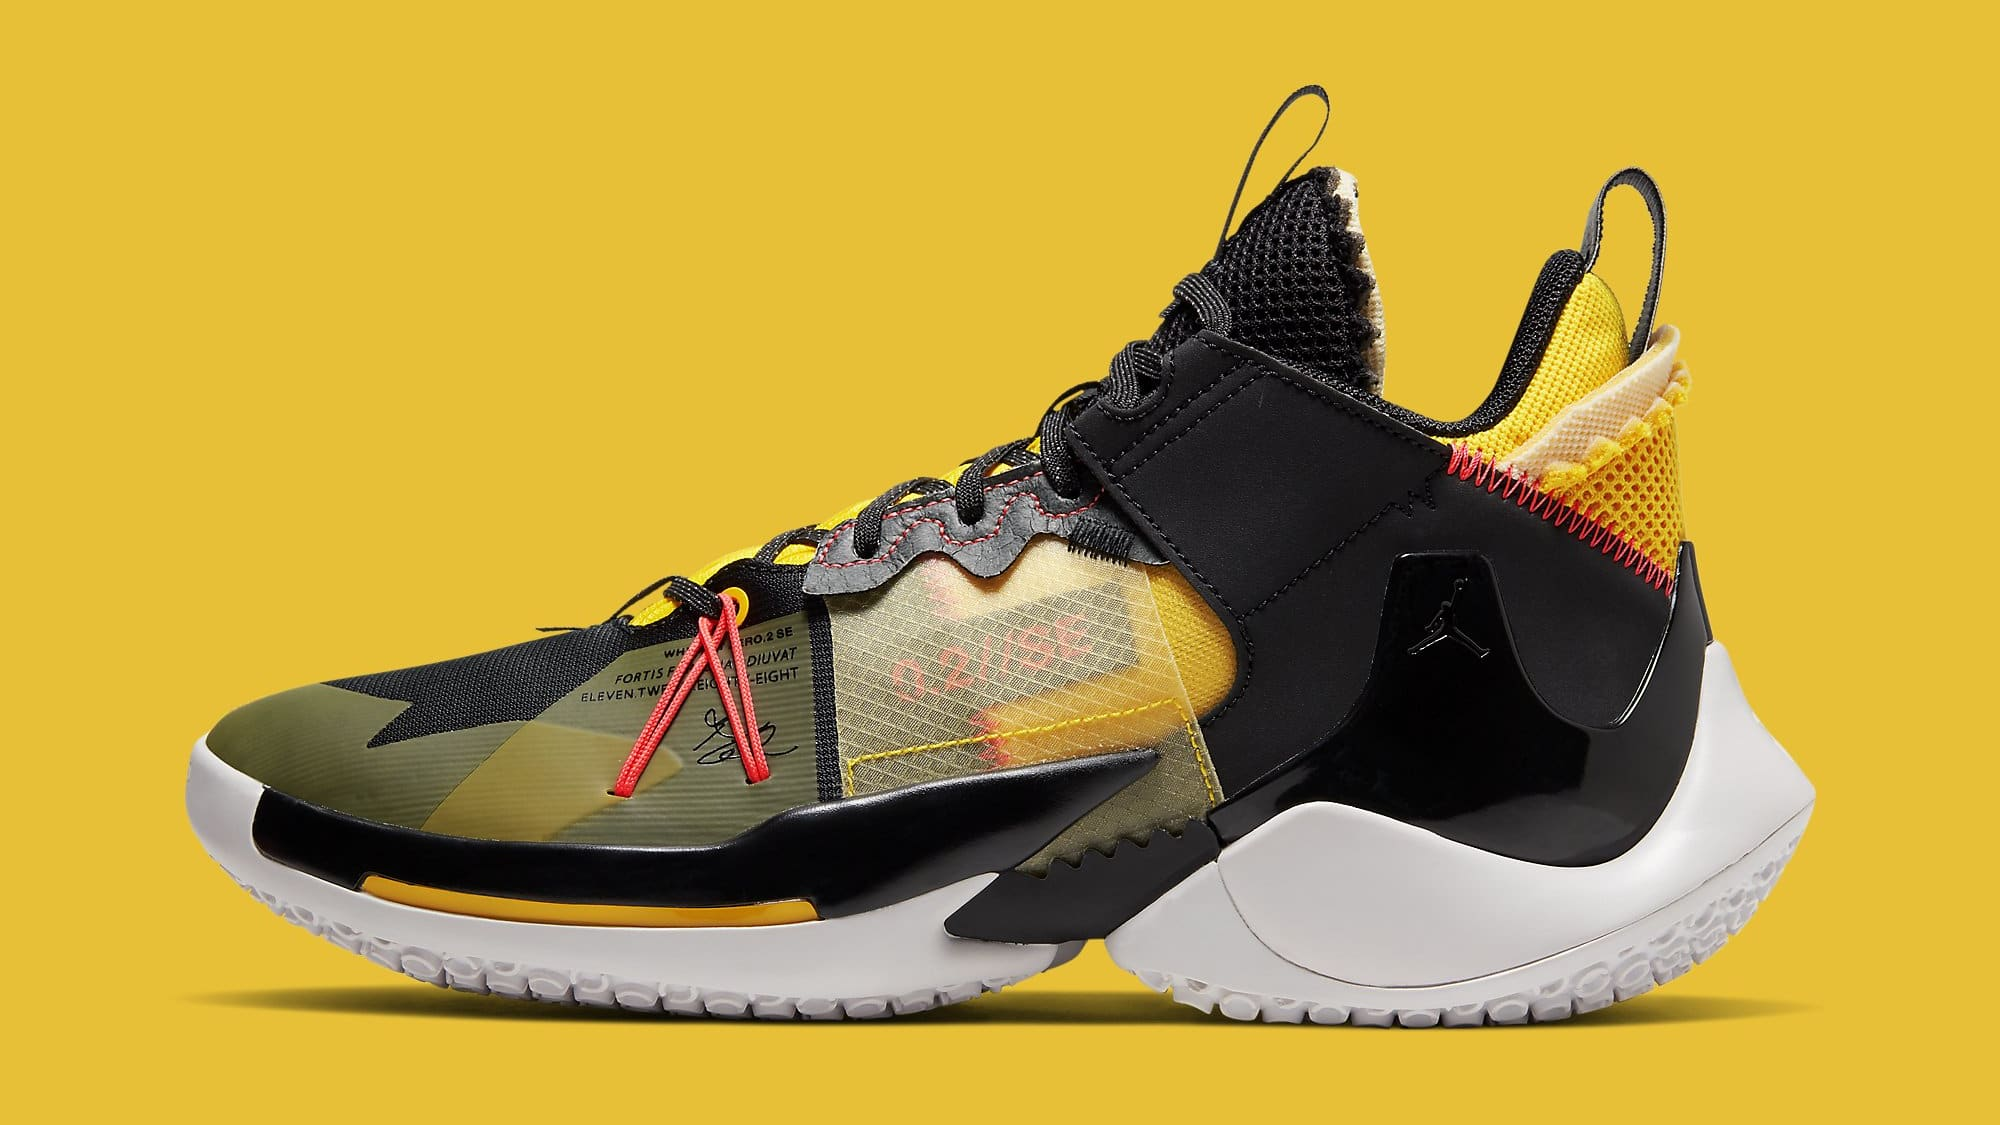 """Russell Westbrook's """"Birthday"""" Jordan Why Not Zer0.2 Revealed: Official Photos"""